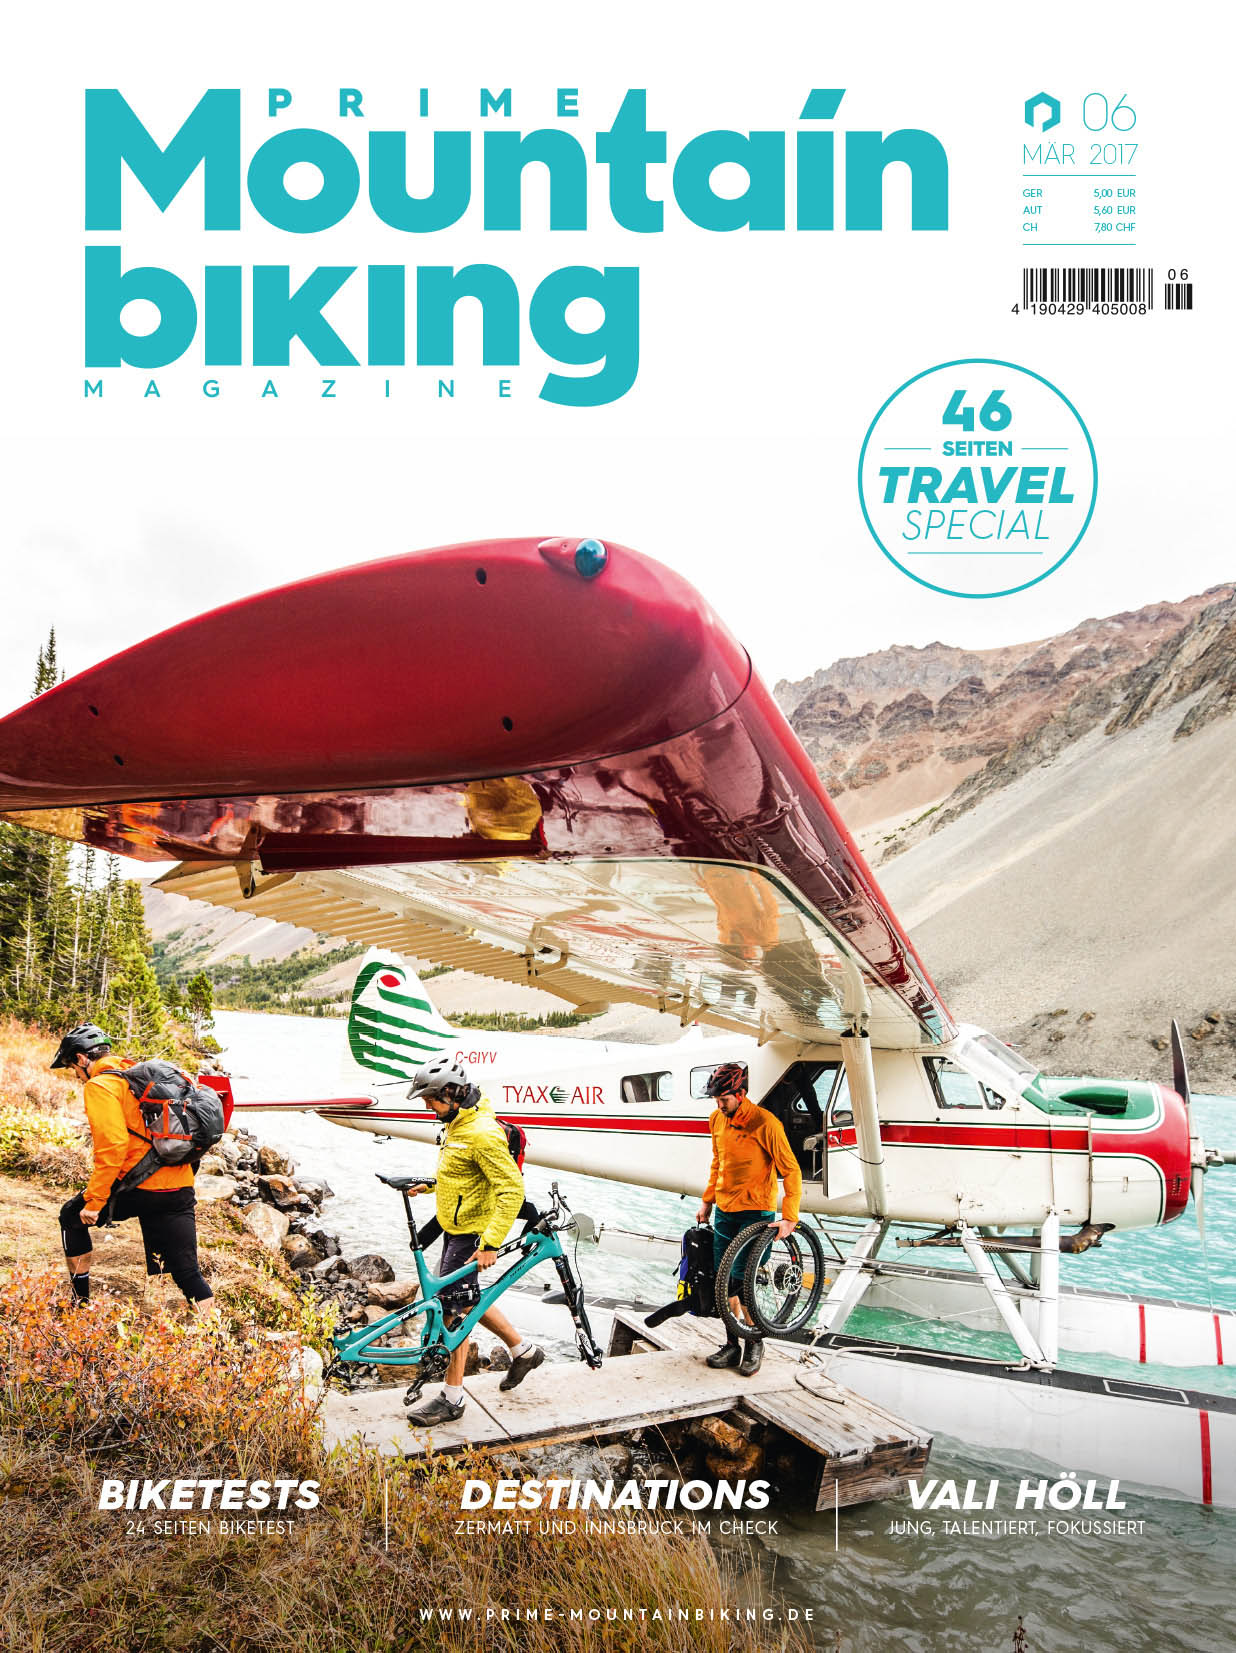 Prime Mountainbiking Magazine #06 Cover